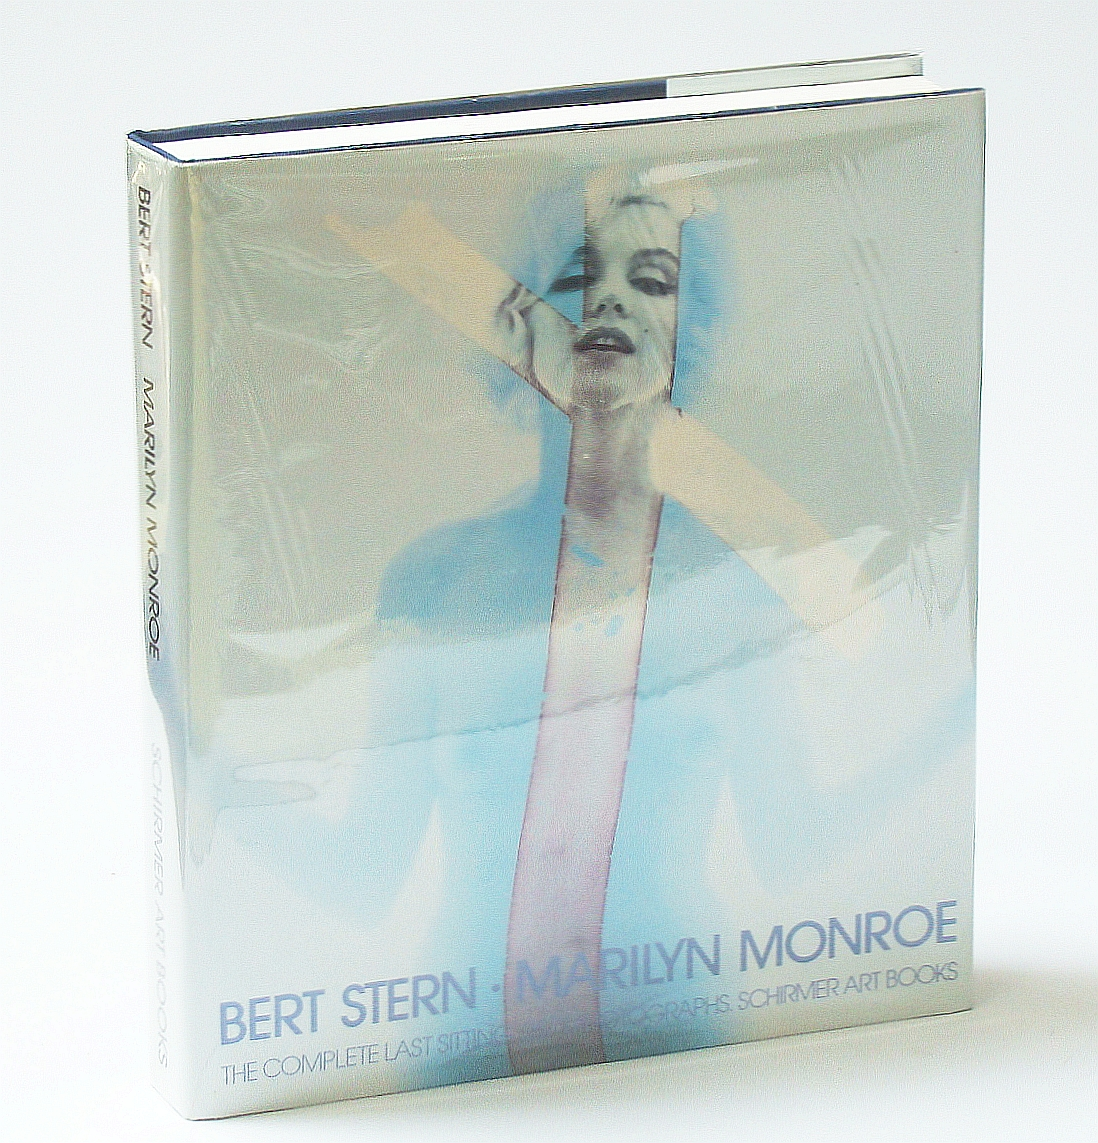 Image for Bert Stern/Marilyn Monroe: The Complete Last Sitting